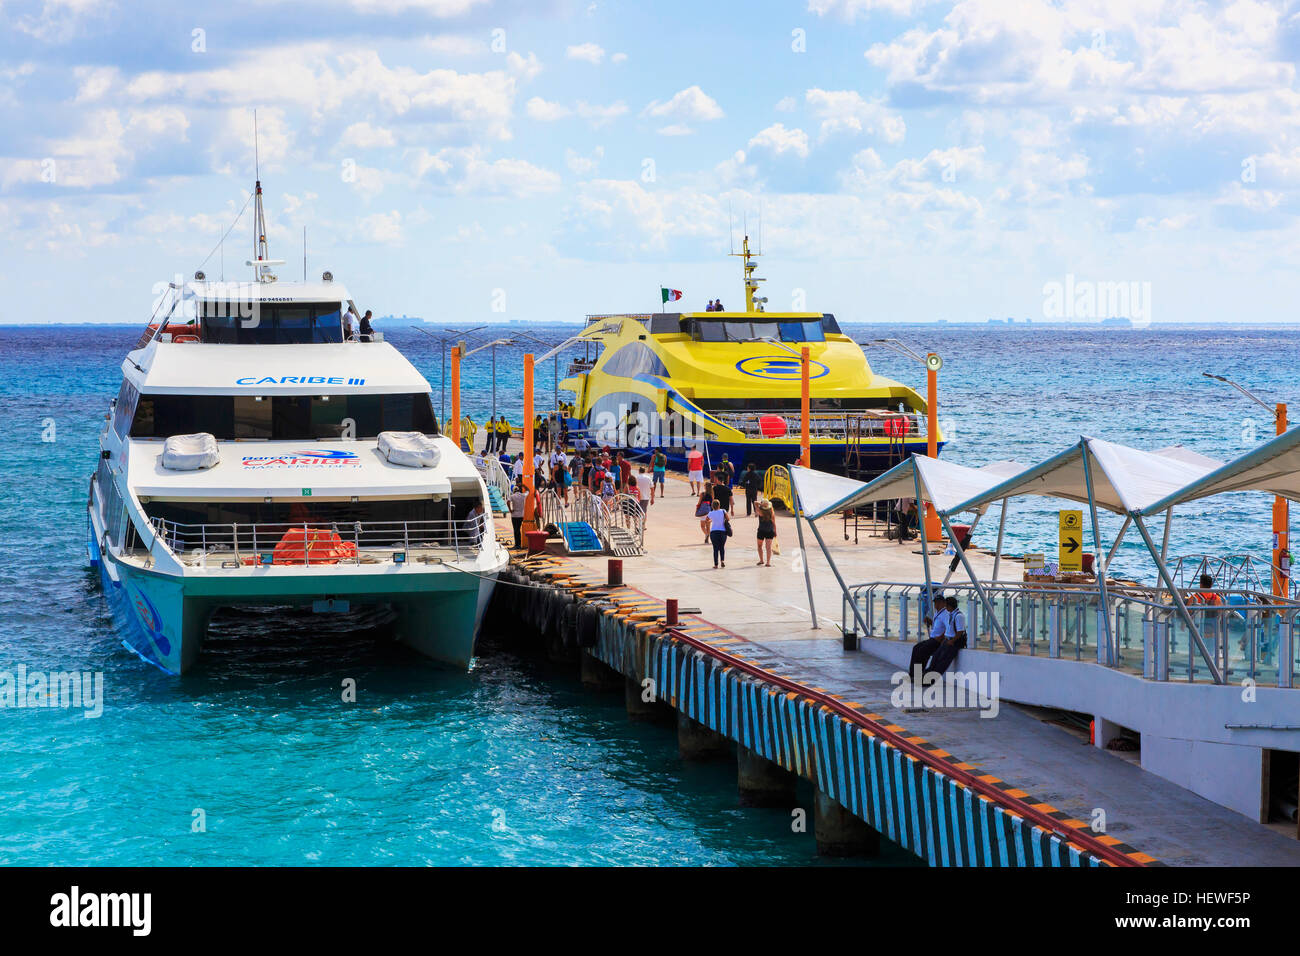 Ferries at the pier at Playa Del Carmen, Riviera Mya, Mexico. Ferries sail to Cozumel - Stock Image